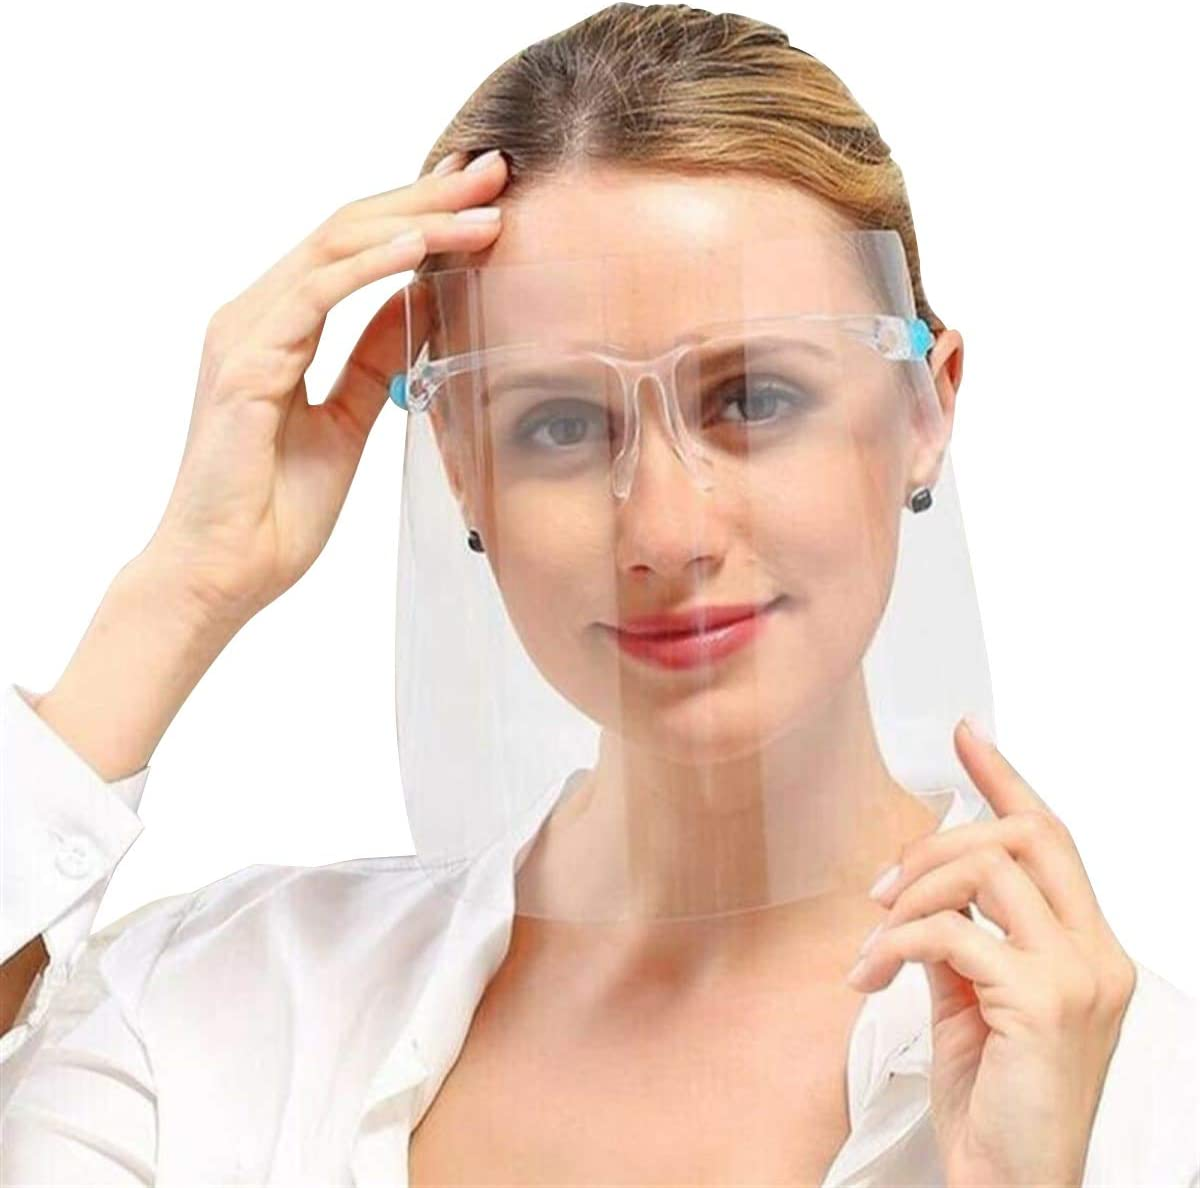 10 PCS Clear Full Cover Face Shield Glasses Safety Protector Reusable Anti-fog